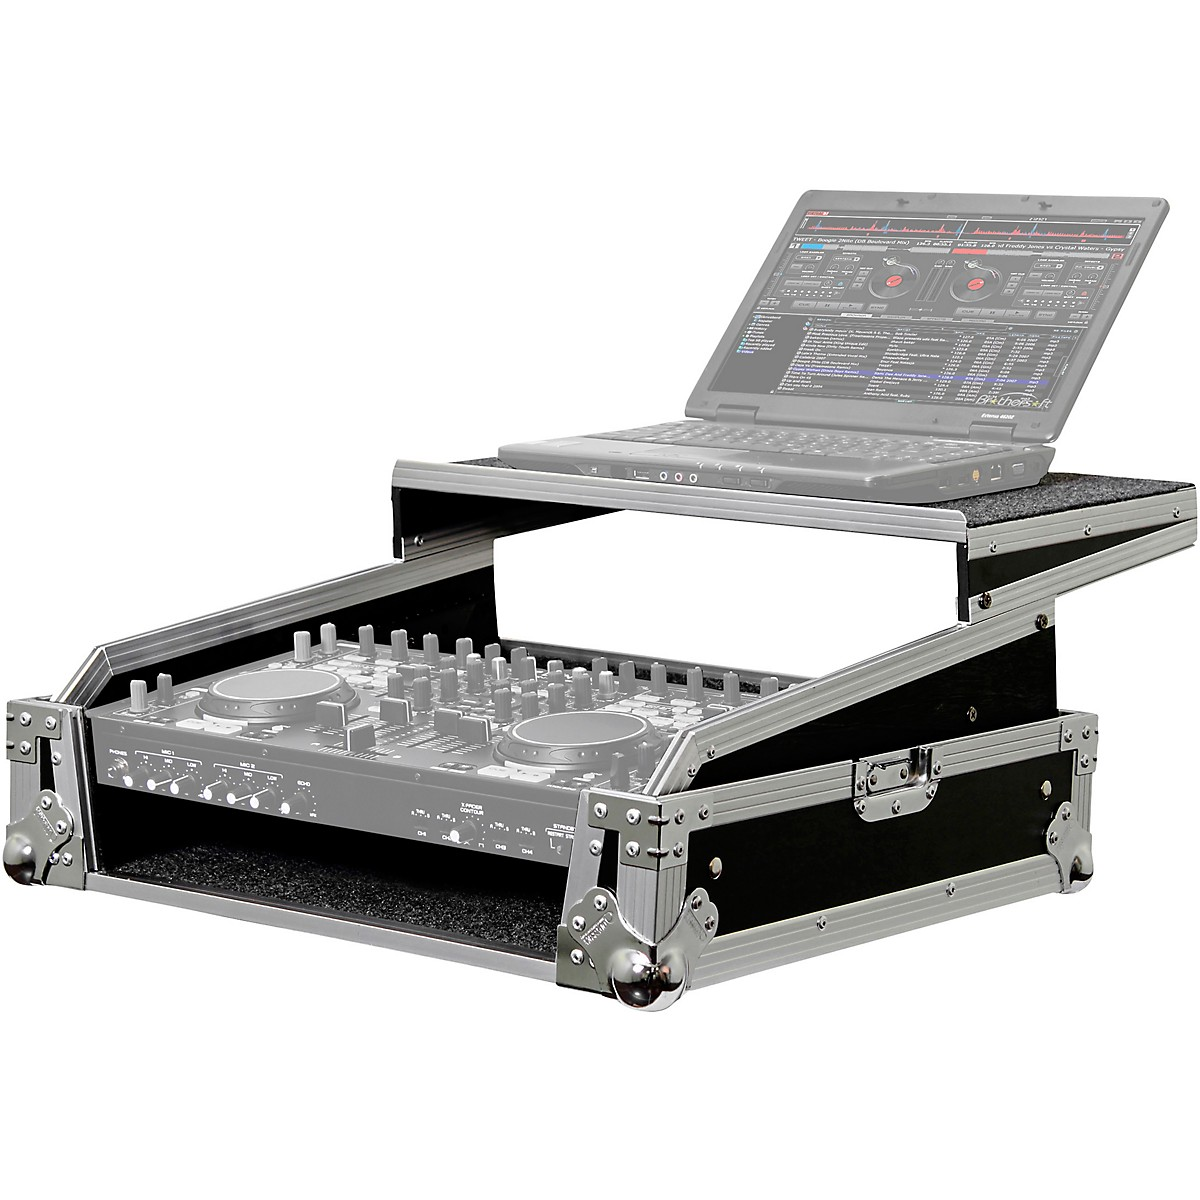 Odyssey FZGS8CDMIX Flight Zone Glide Style Rackmount Case for DJ Controllers & Front Load CD/Digital Media Mixers